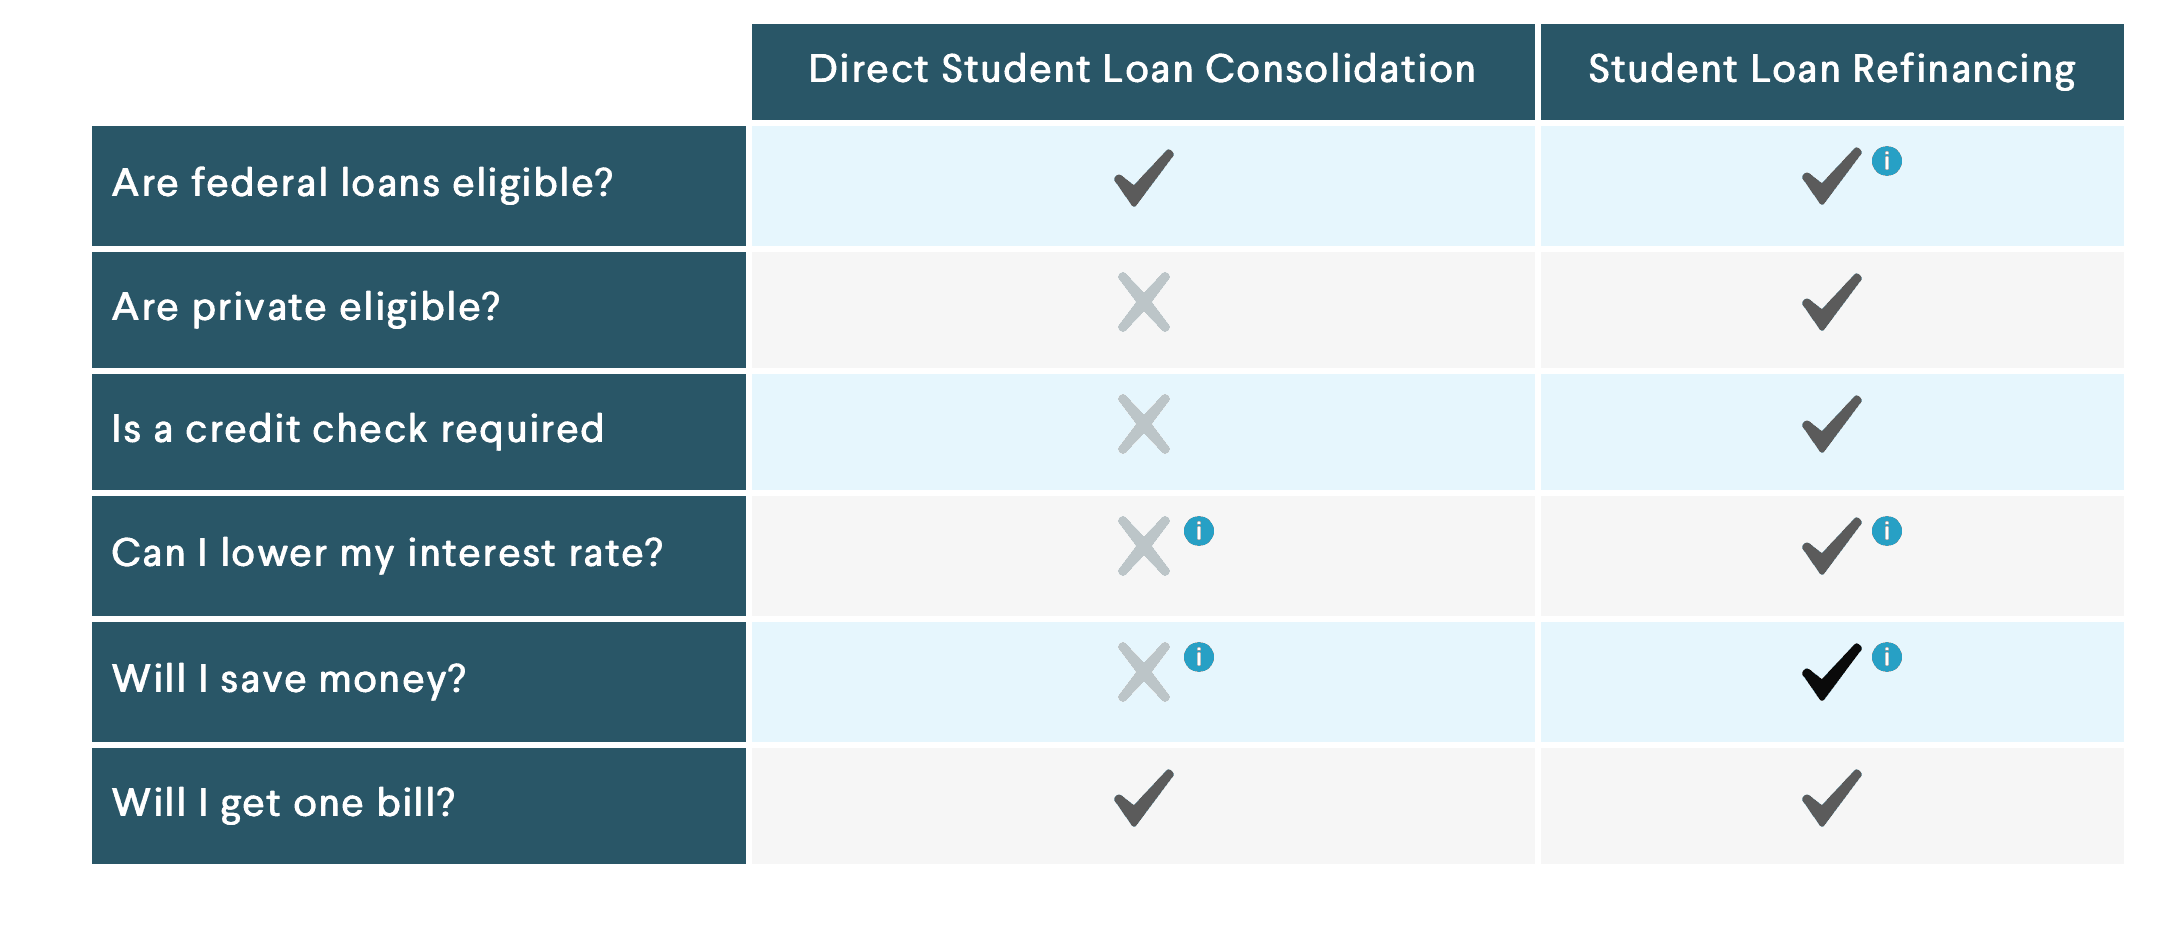 Consolidation - How to Know if Loan Consolidation is Right For You